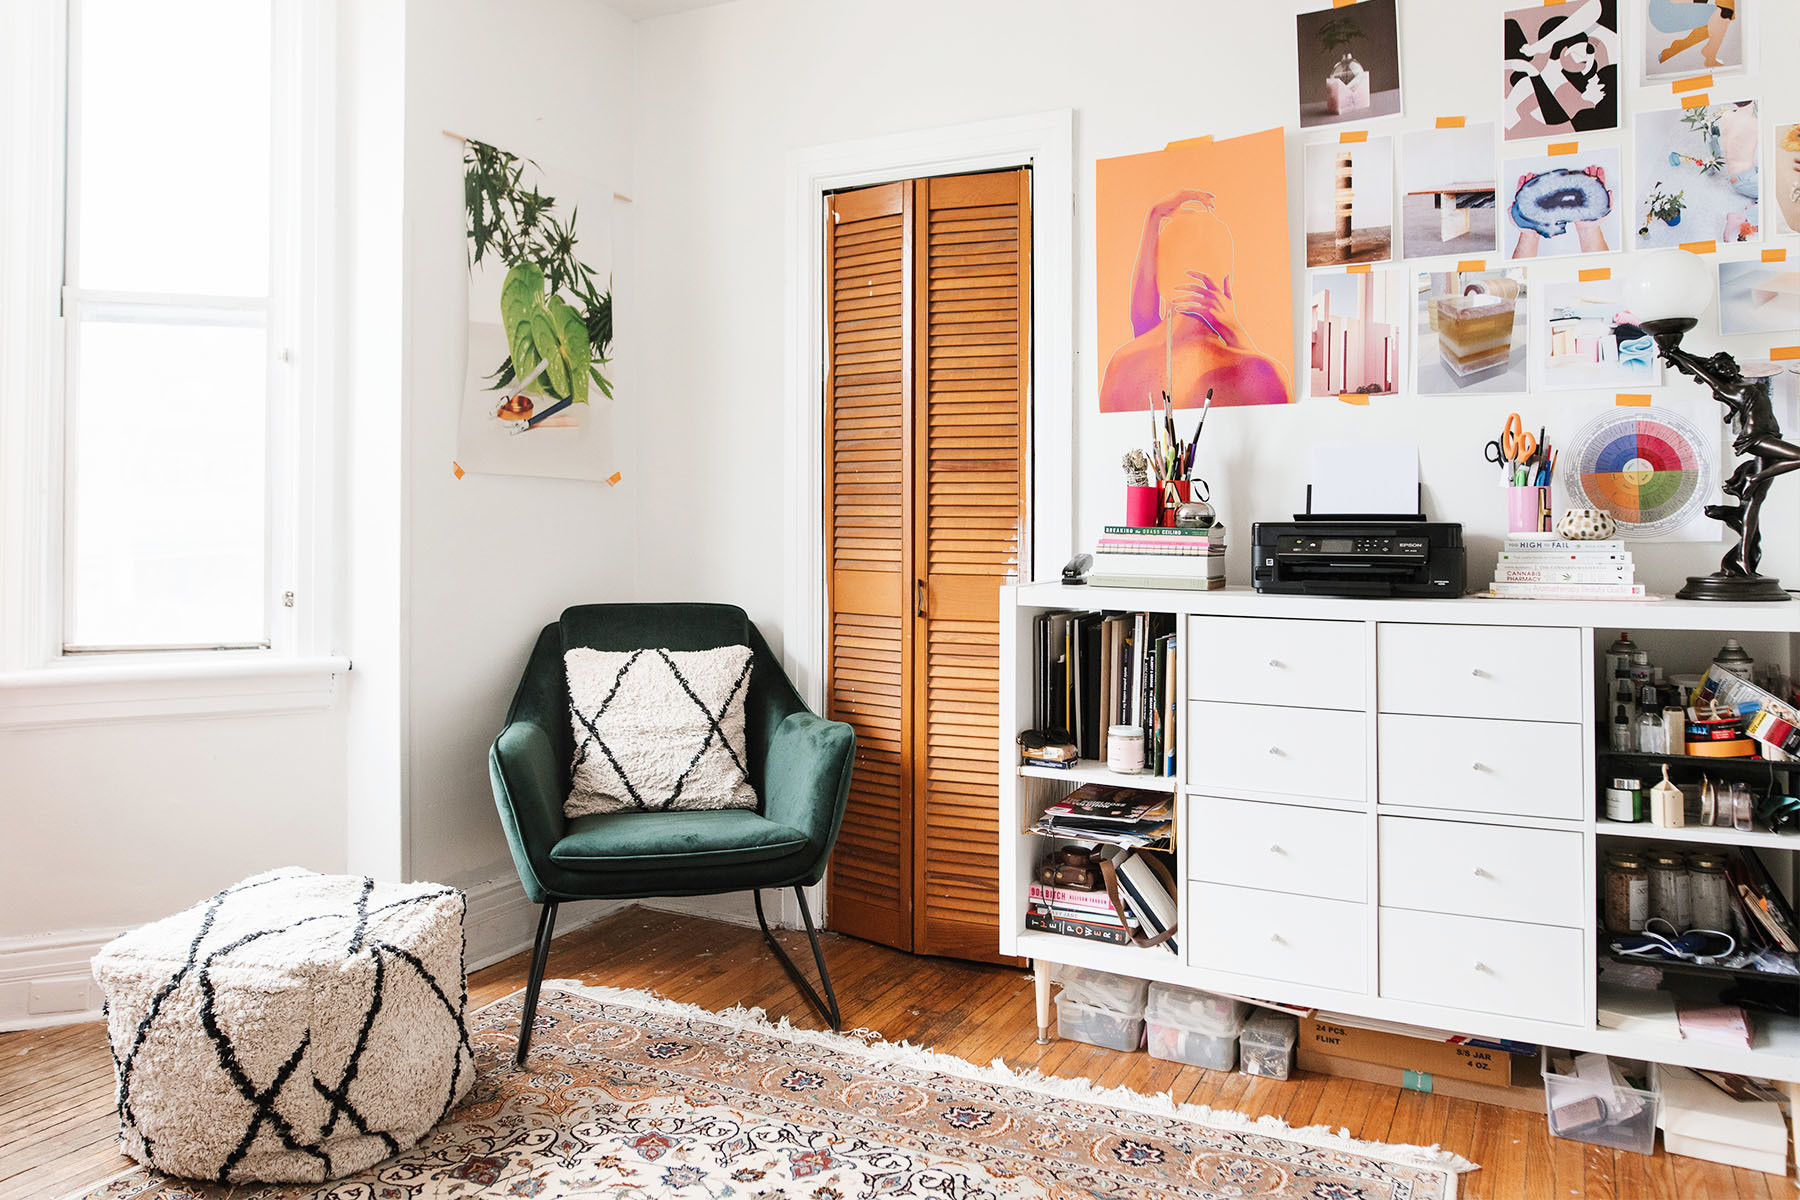 Sackville & Co. co-founder Hayley Dineen's Toronto home boasts a light, bright workroom and studio. Structube Armchair | Vintage Area Rug | Structube Pillow | Structube Pouf | IKEA Shelves | Duncan Foy Print.